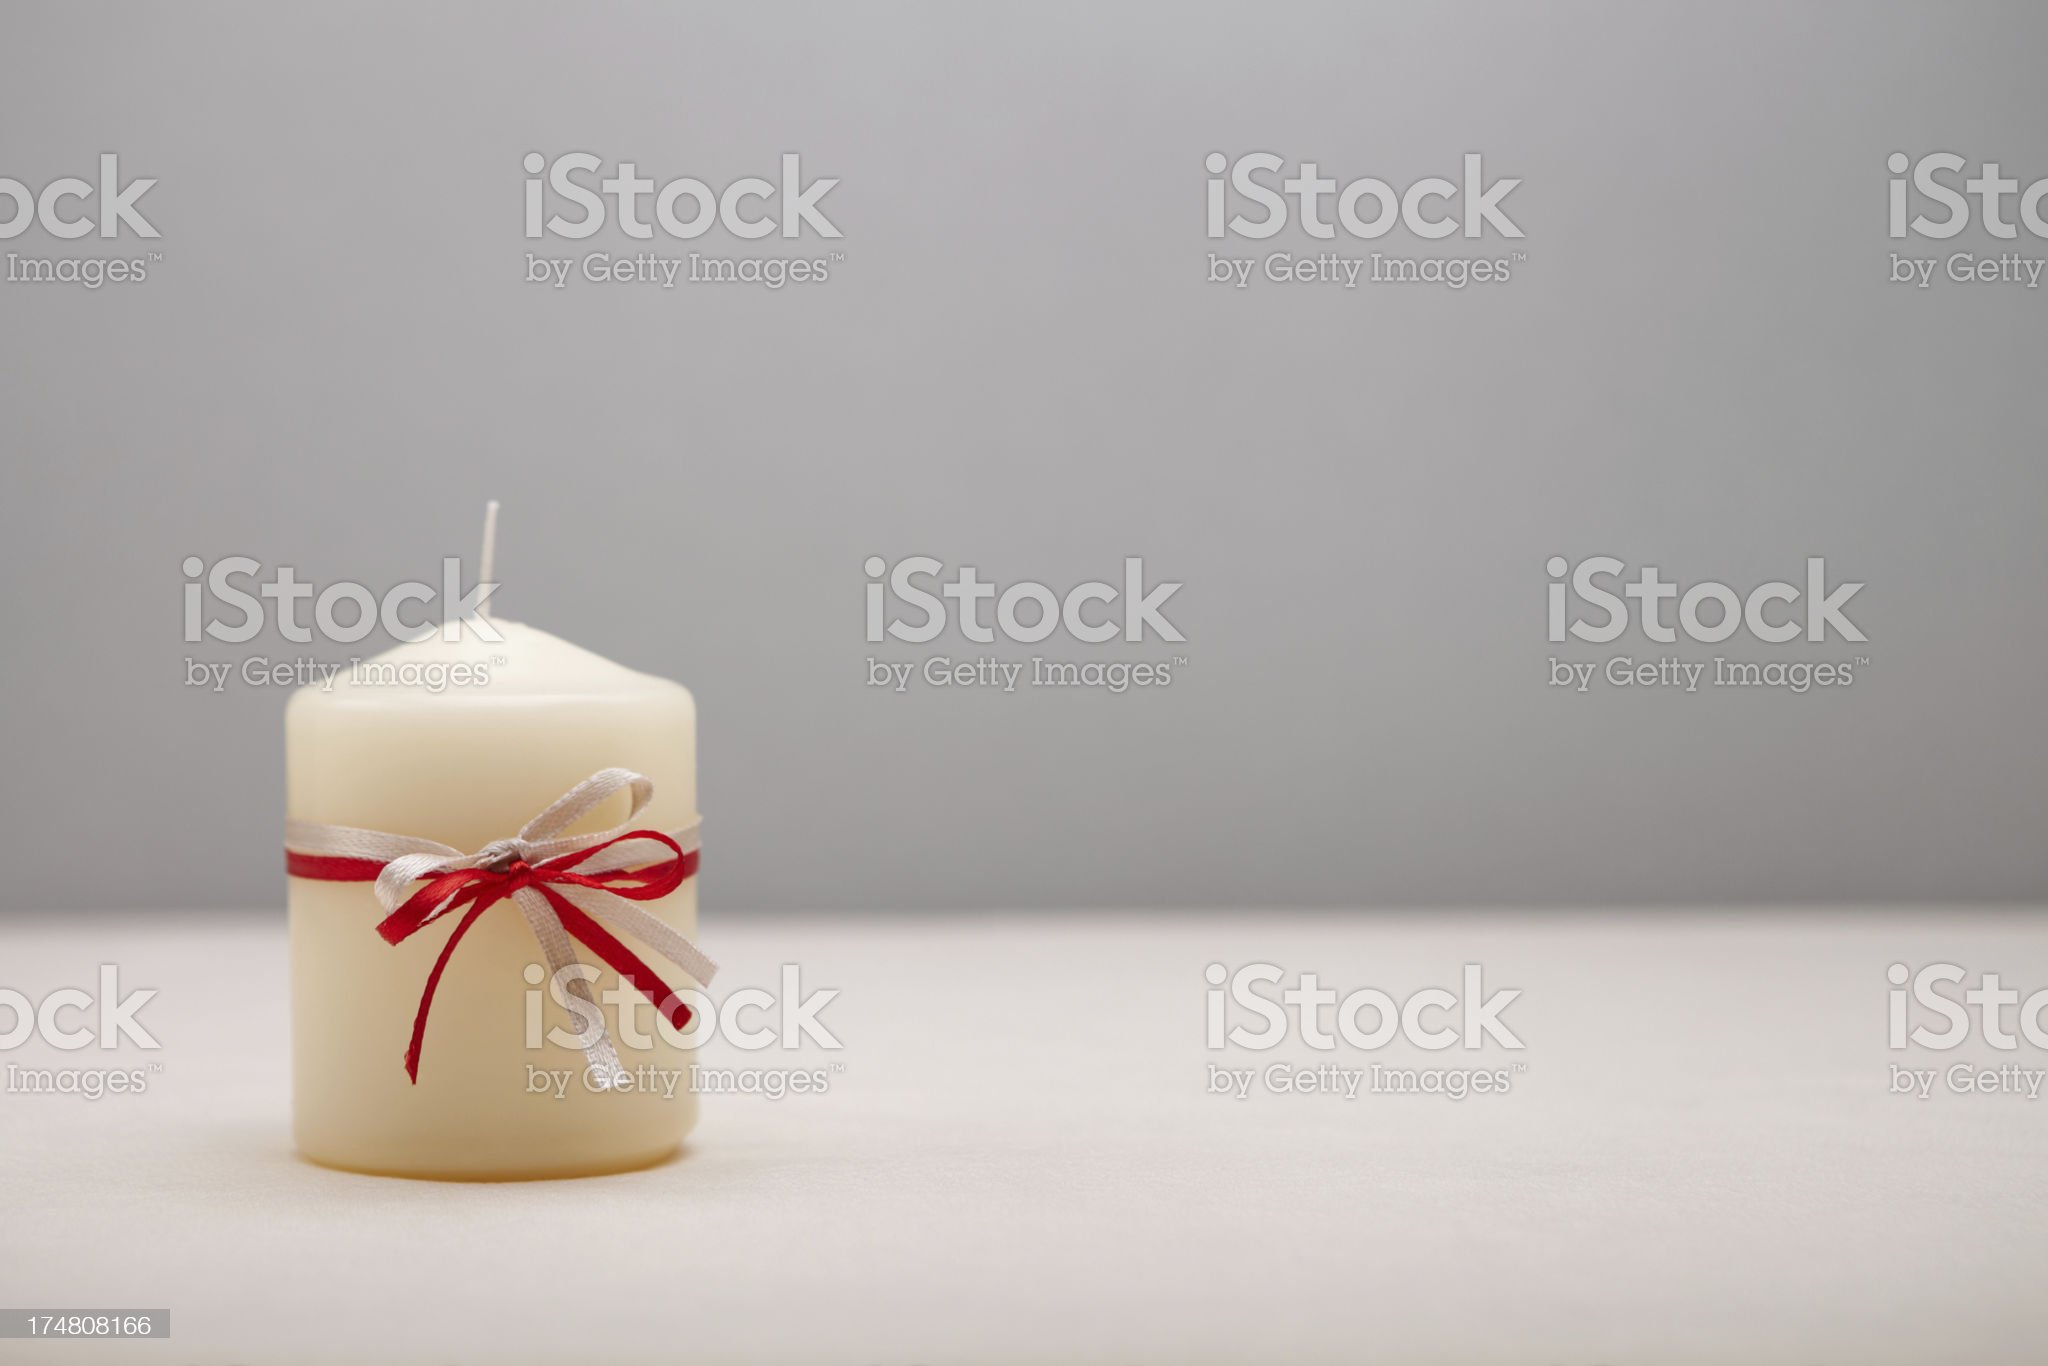 Background with decorated candle royalty-free stock photo